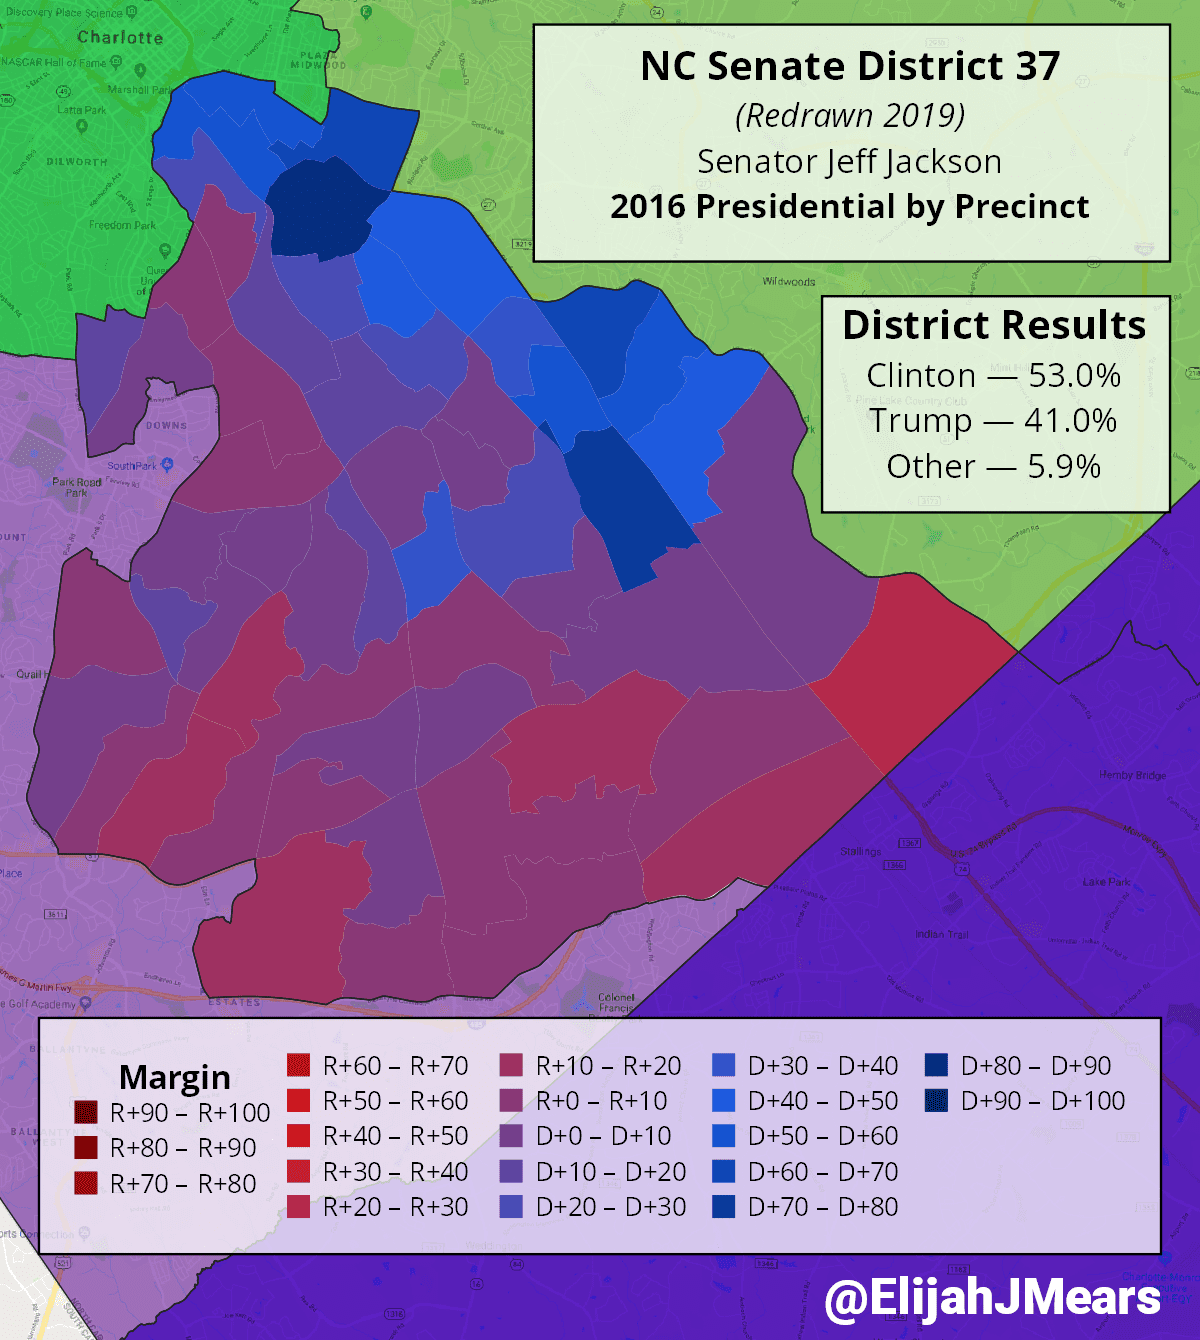 Precinct results in new Senate District 37 for the 2016 Presidential election